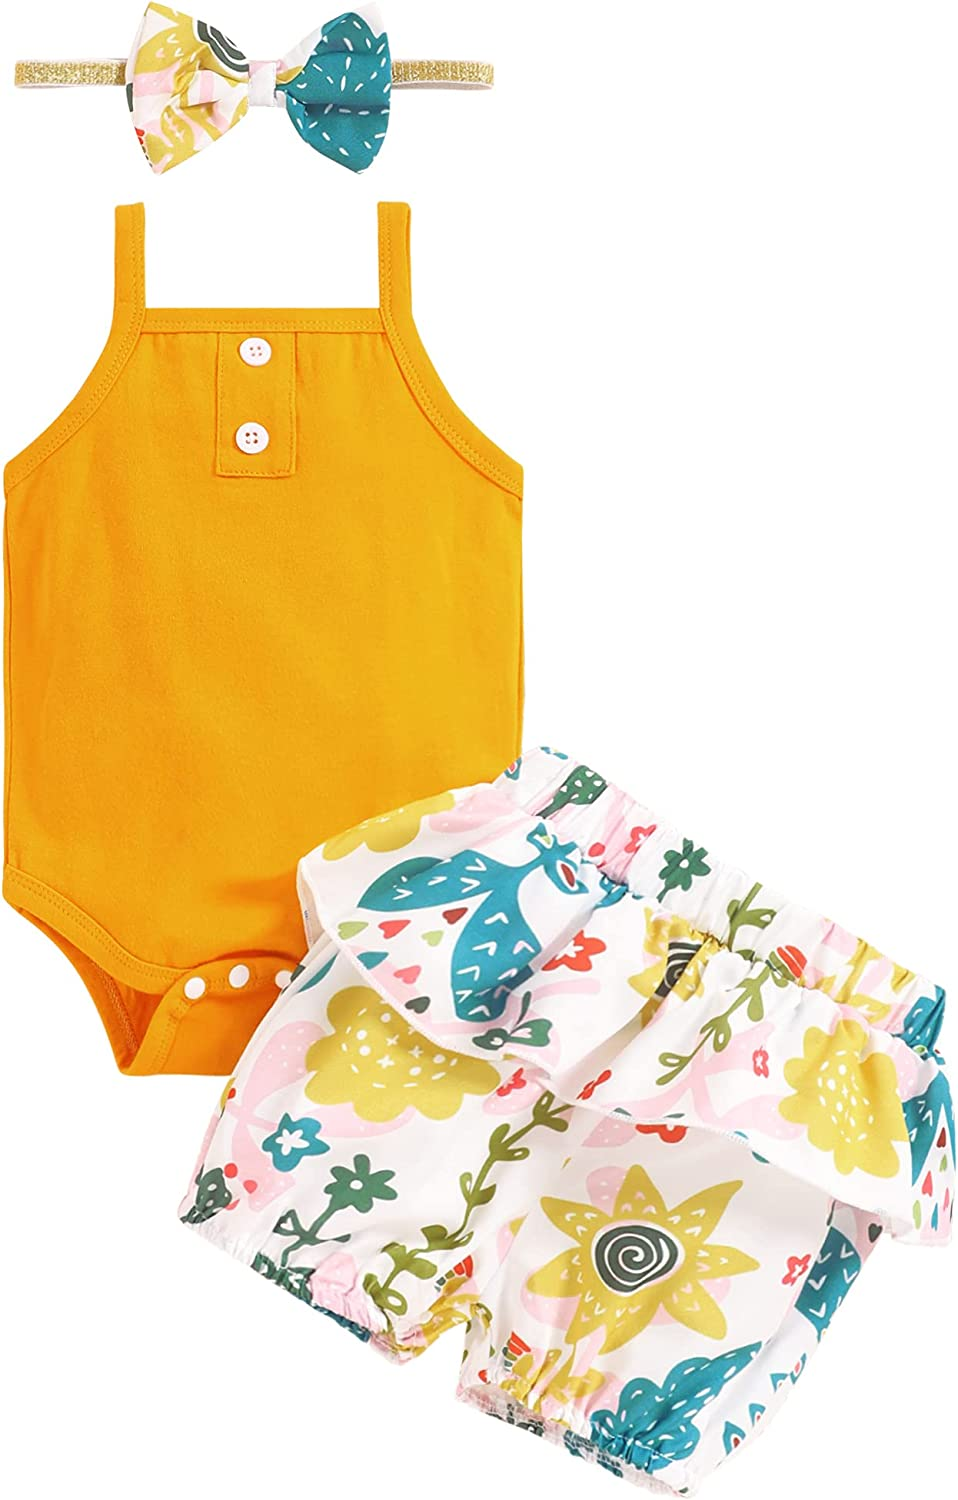 Newborn Baby Girl Clothes Outfits Romper Bodysuit Suspenders Sleeveless Tops Floral Ruffle Shorts Summer Set with Headband